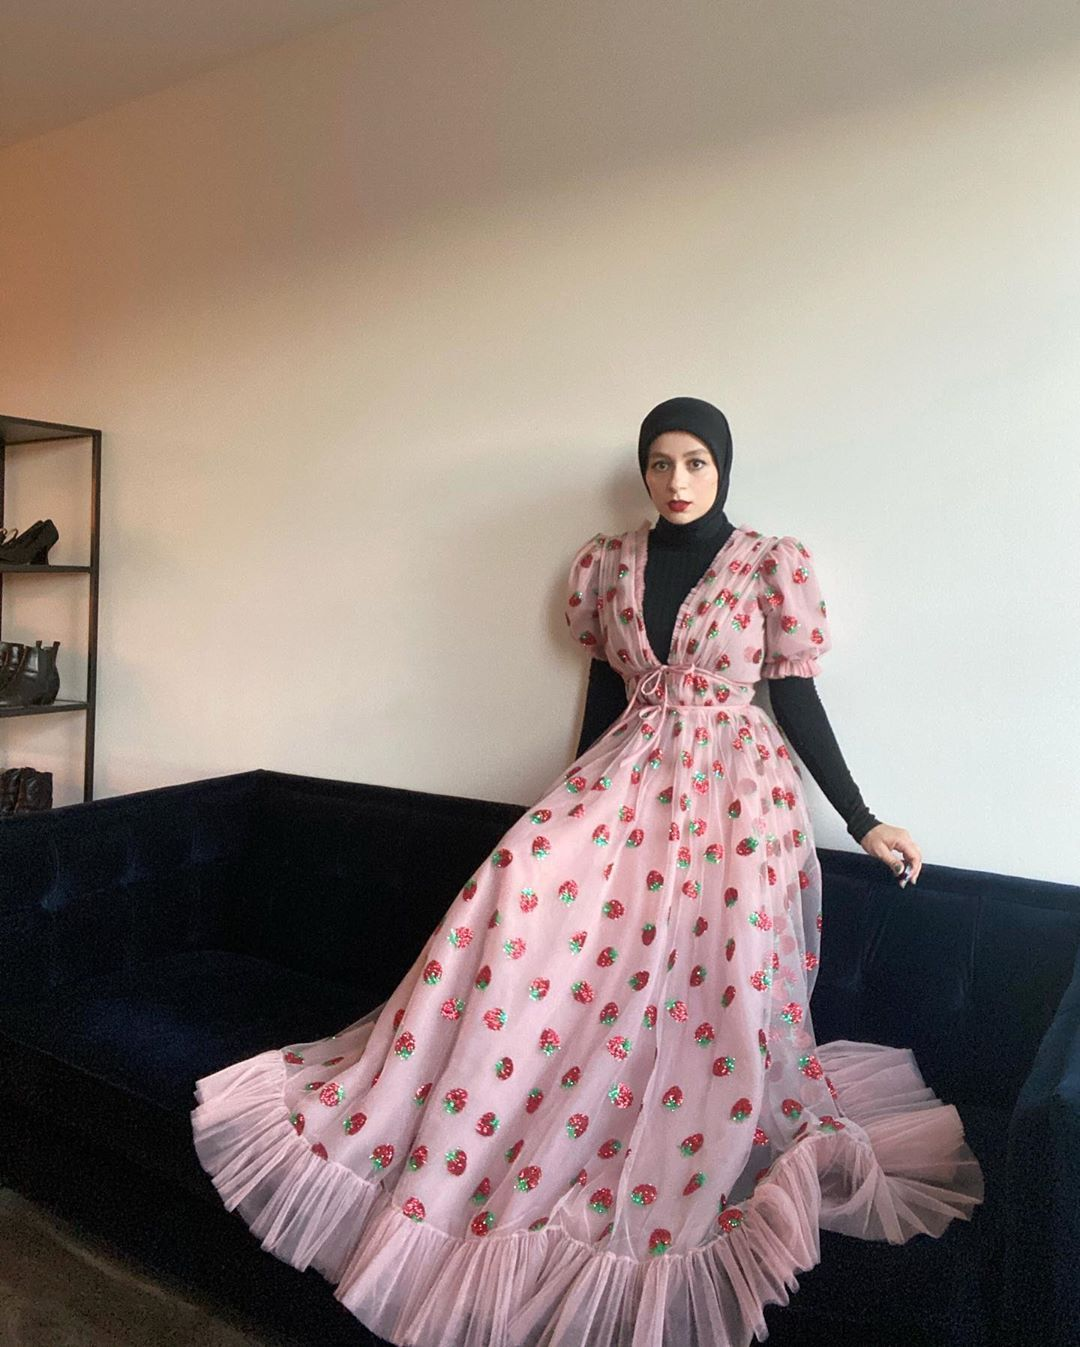 Noor On Instagram I Truly Did Not Want To Take This Dream Of A Dress Off Thank You Lirika Matoshi For Making This Incredib Strawberry Dress Fashion Dresses [ 1347 x 1080 Pixel ]